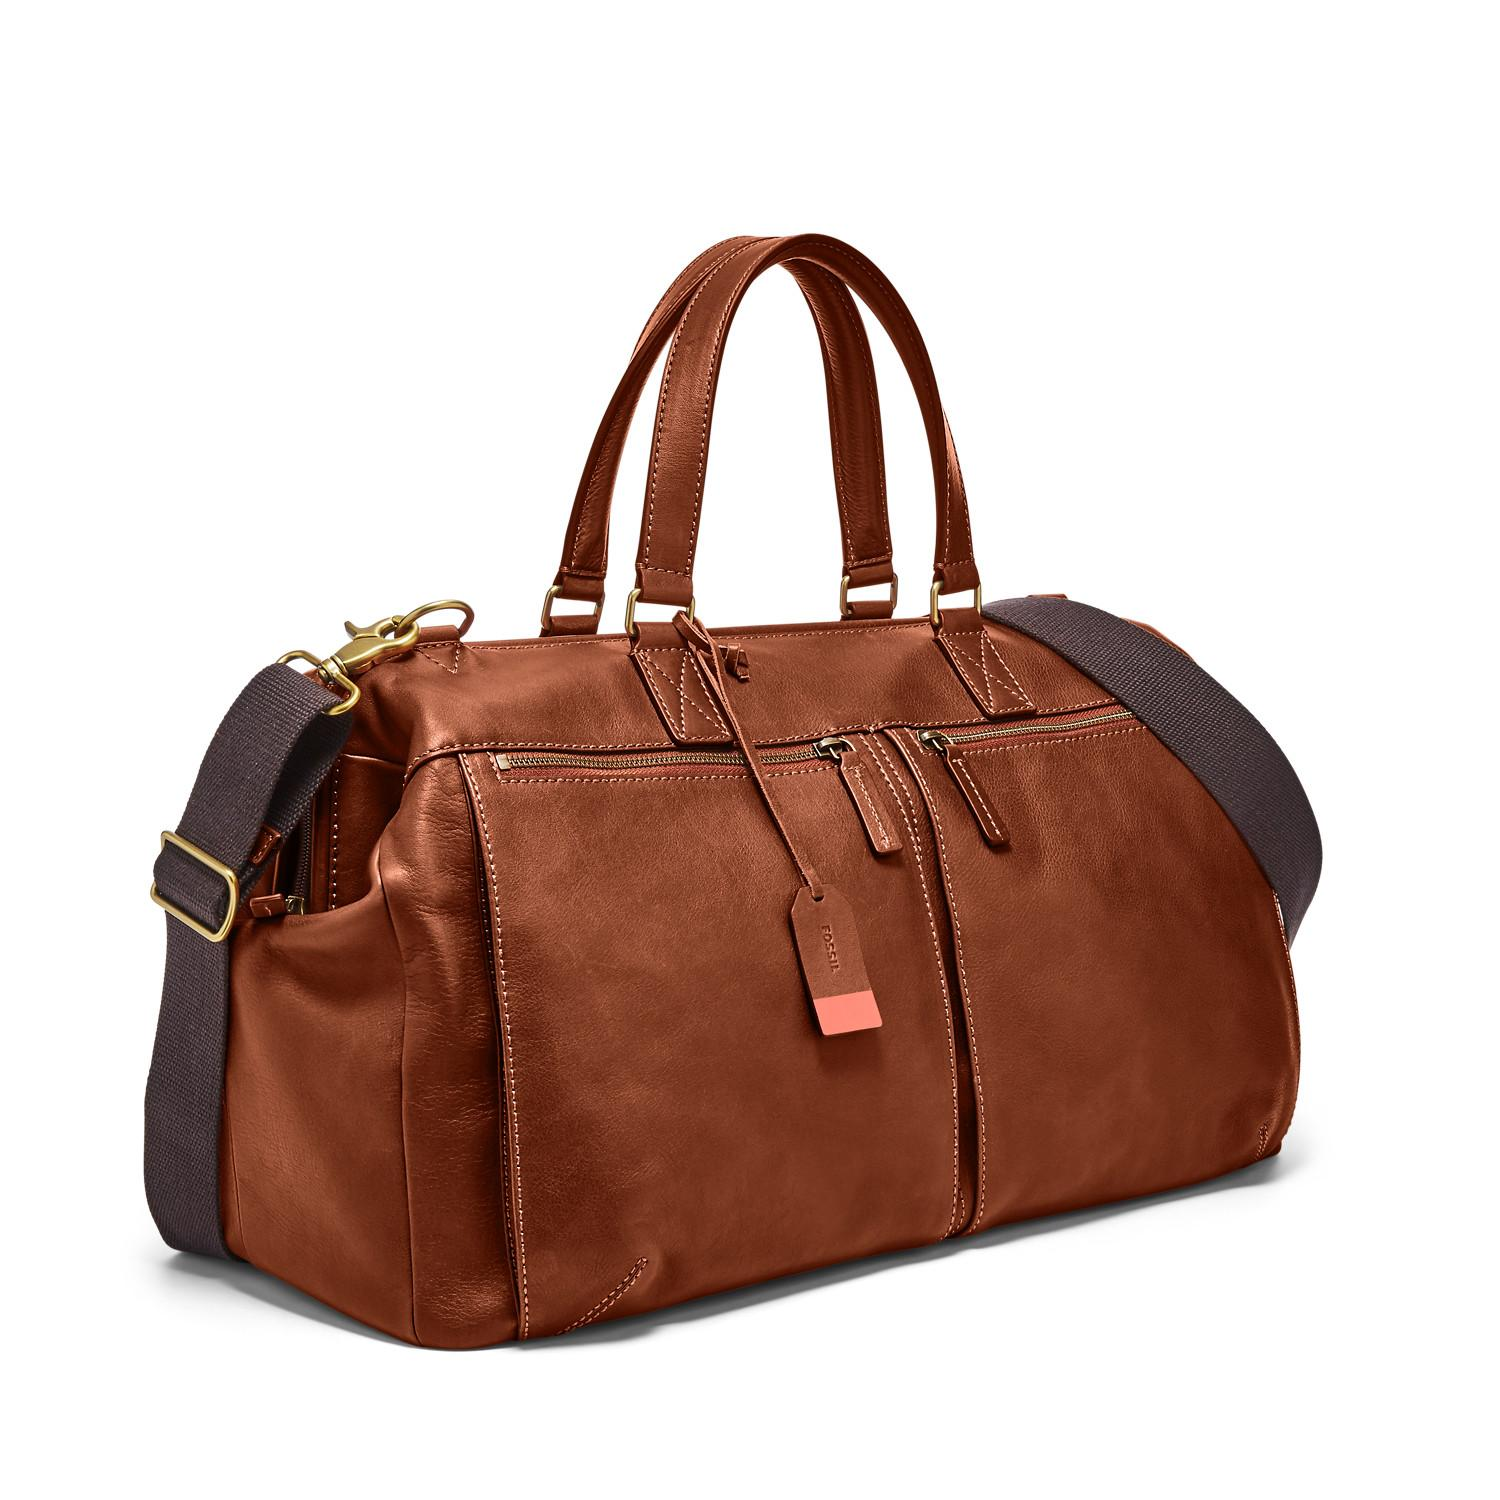 Image result for leather duffle bag mens